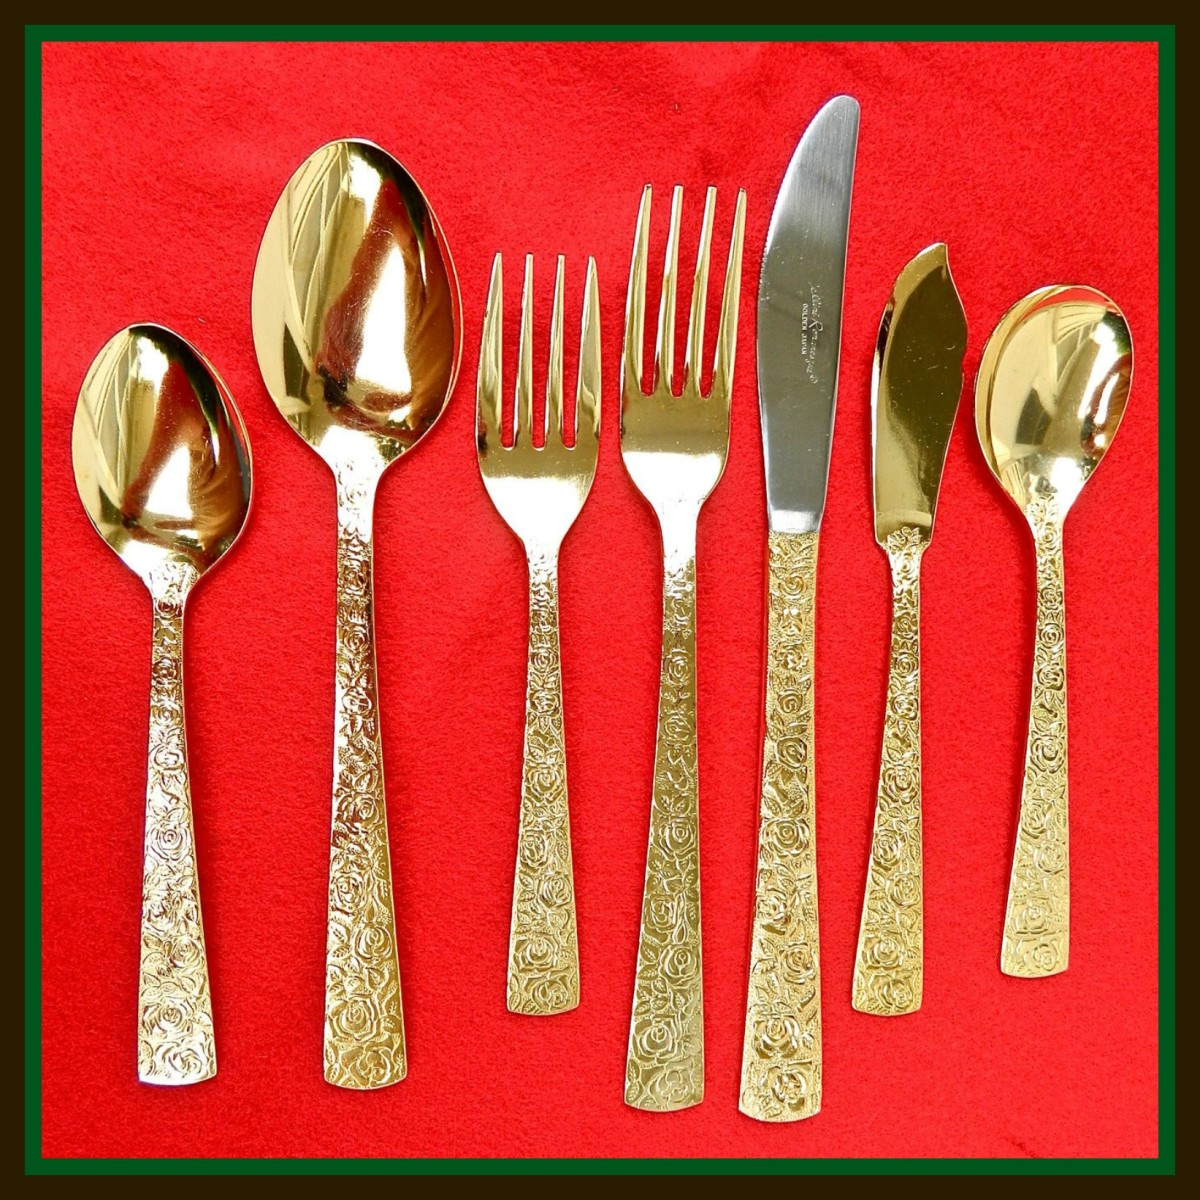 For a real celebration one needs to use Cellini, Romanesque Pattern Electroplate Golden Flatware made in Japan. It is delicate, rich, and leaves a nice tasteful impression for your guest.